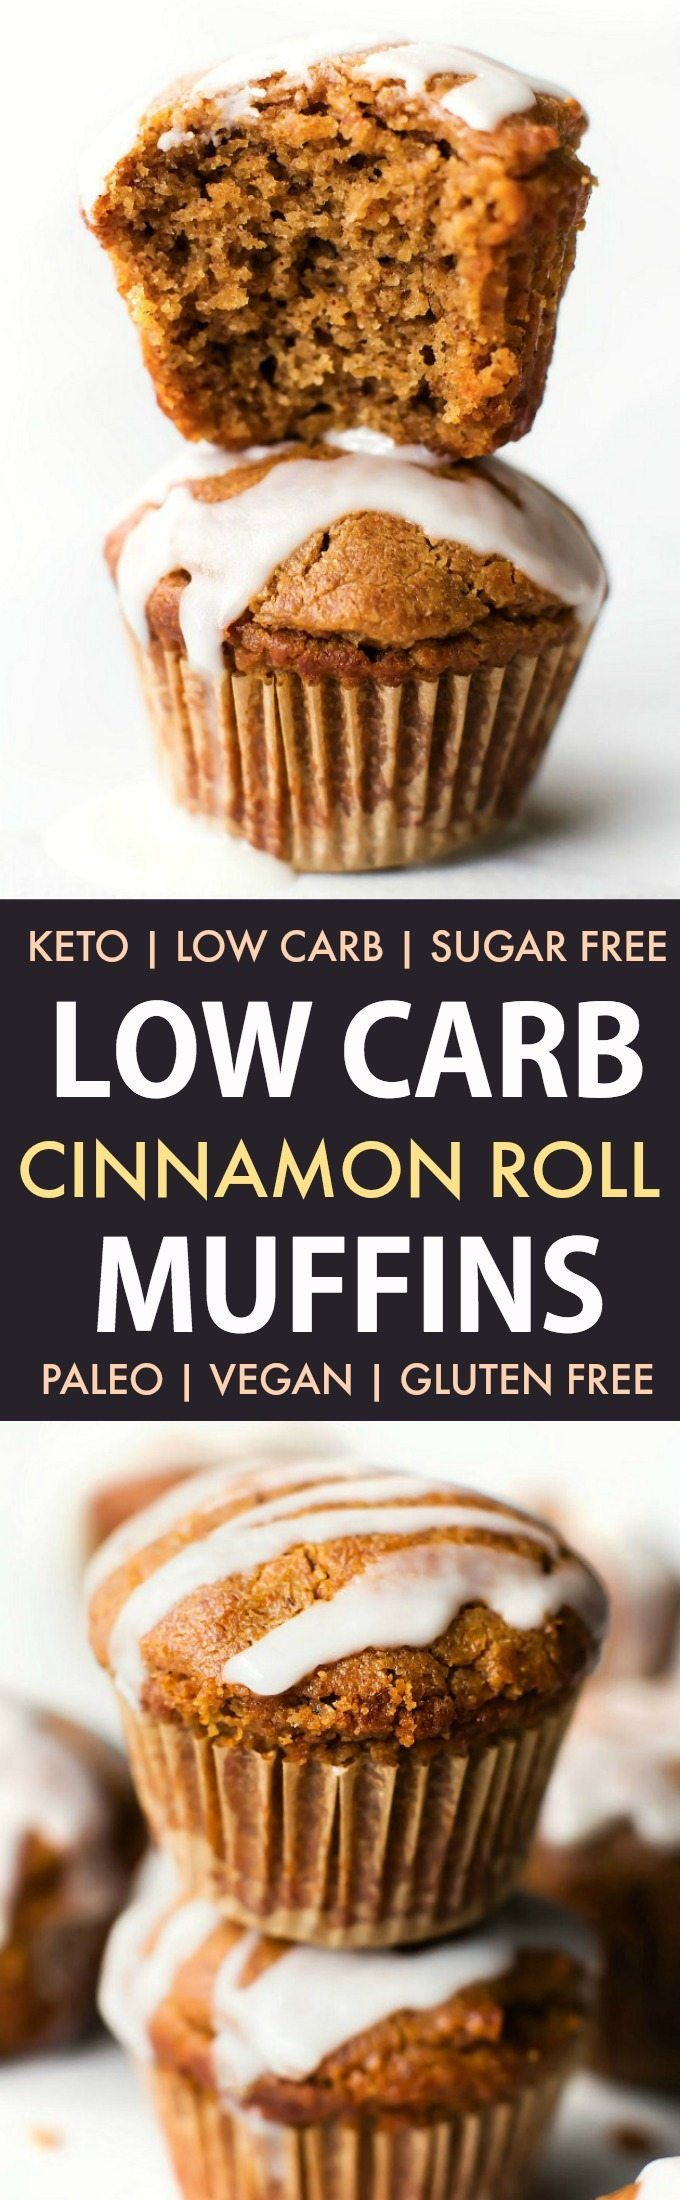 Low Carb Keto Cinnamon Roll Muffins (Paleo, Vegan, Sugar Free, Gluten Free)- A quick and easy recipe for fluffy bakery style high protein muffins tasting like a cinnamon roll- 6 ingredients, freezer-friendly and a healthy breakfast or snack! #ketobaking #